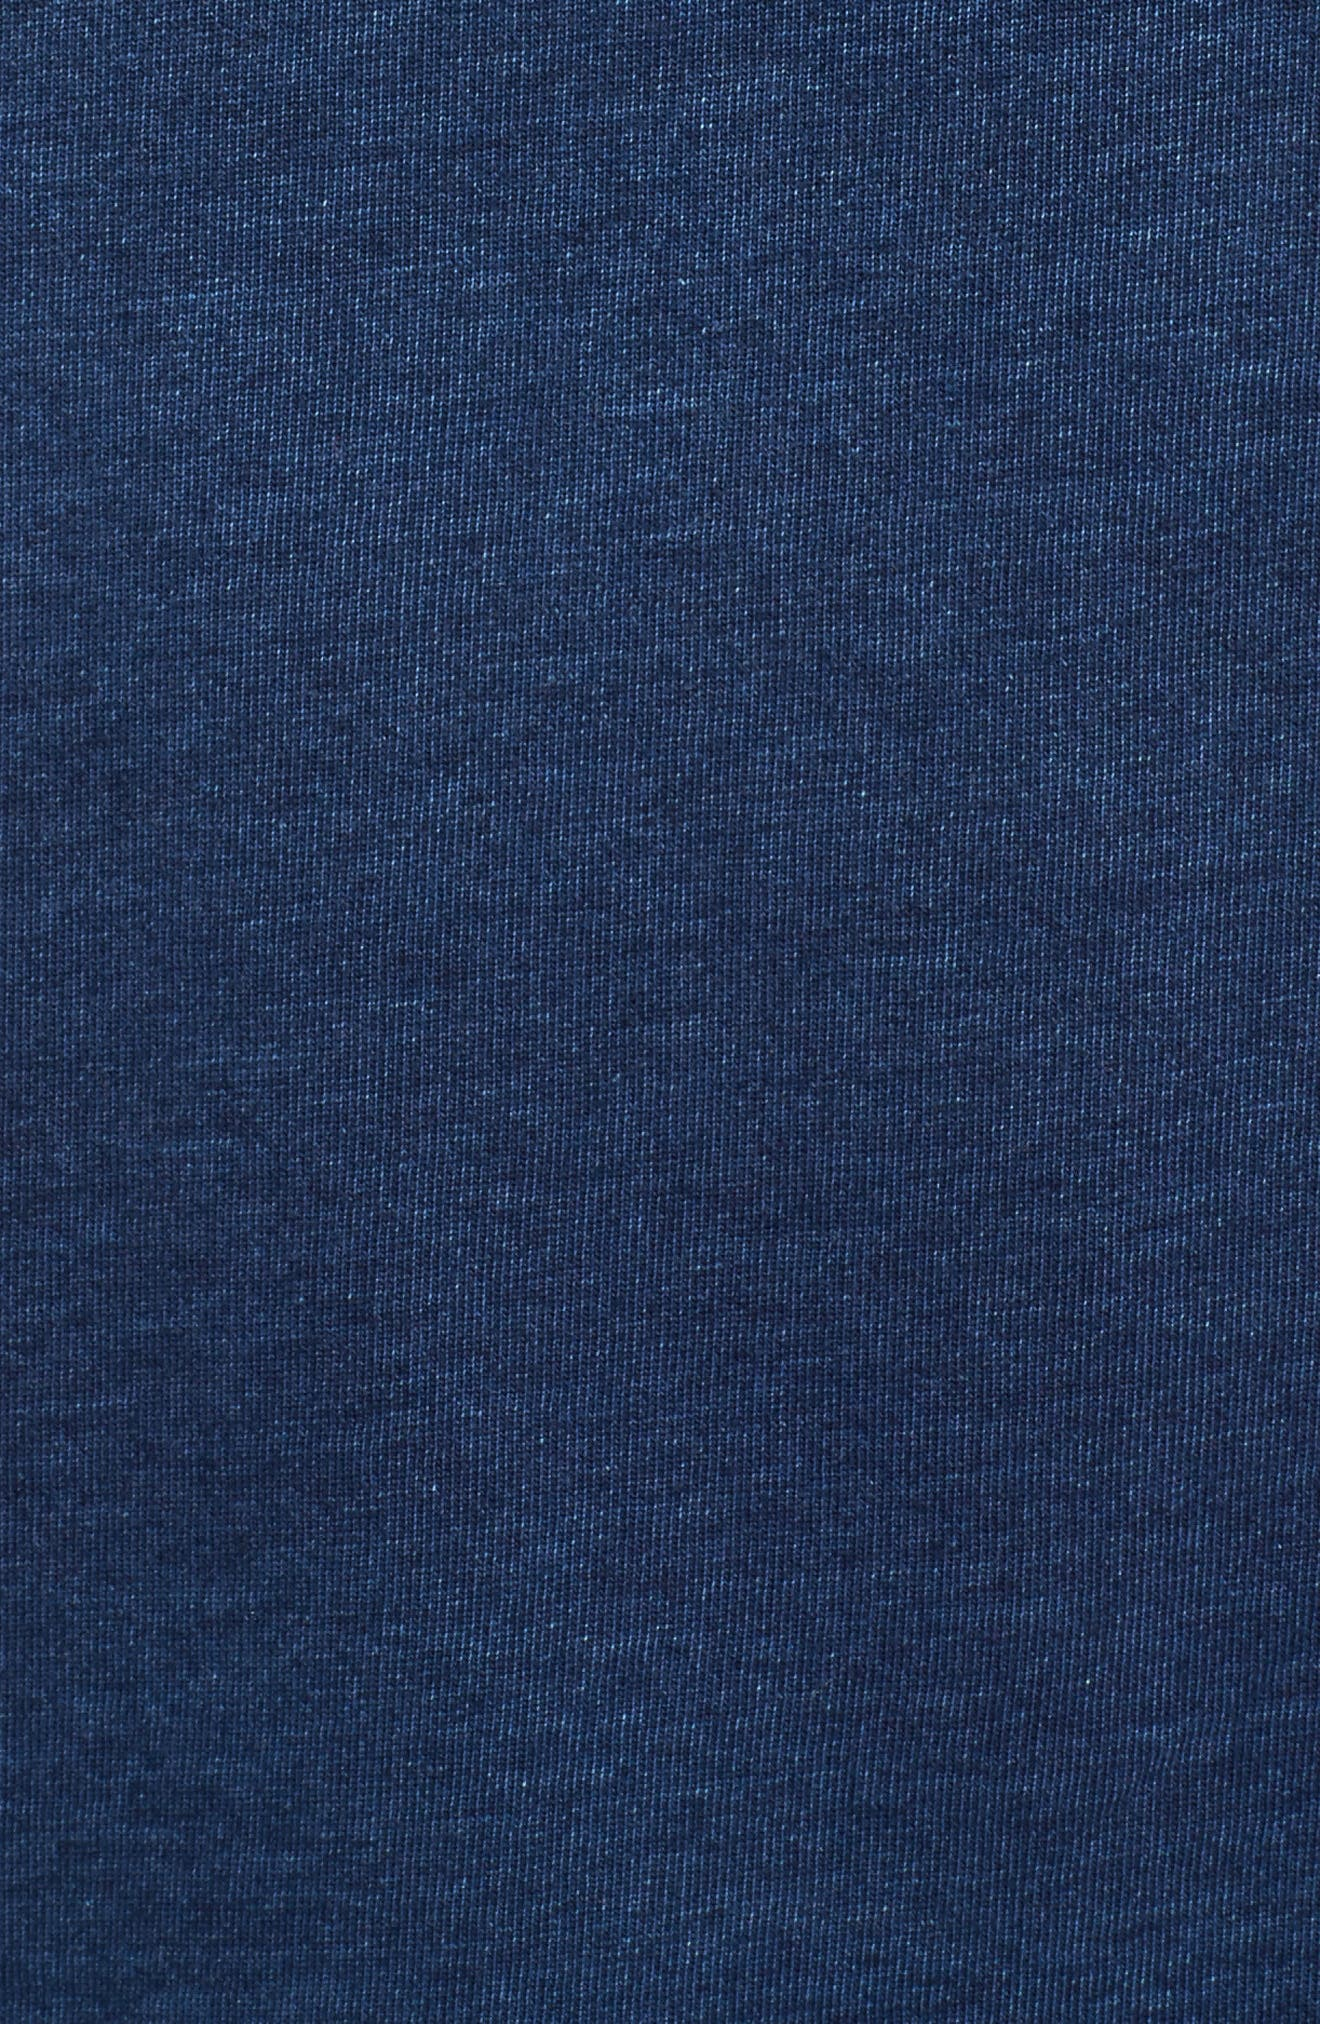 JV Graphic Tee,                             Alternate thumbnail 5, color,                             Indigo Sportswear Logo Indigo